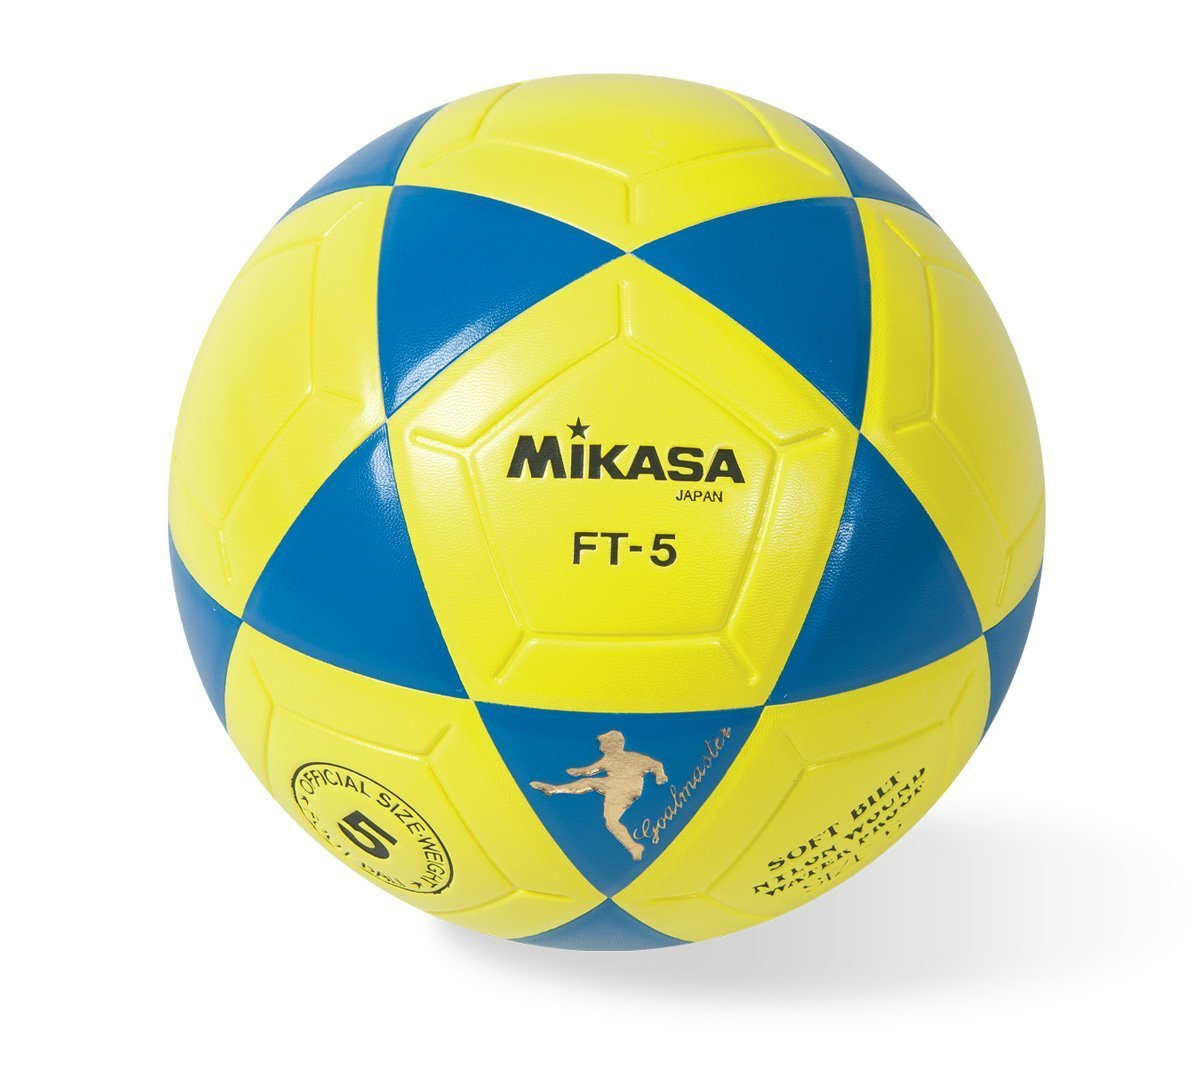 High Qualityaster Soccer Ball (Size 5) B07C2QVW6R